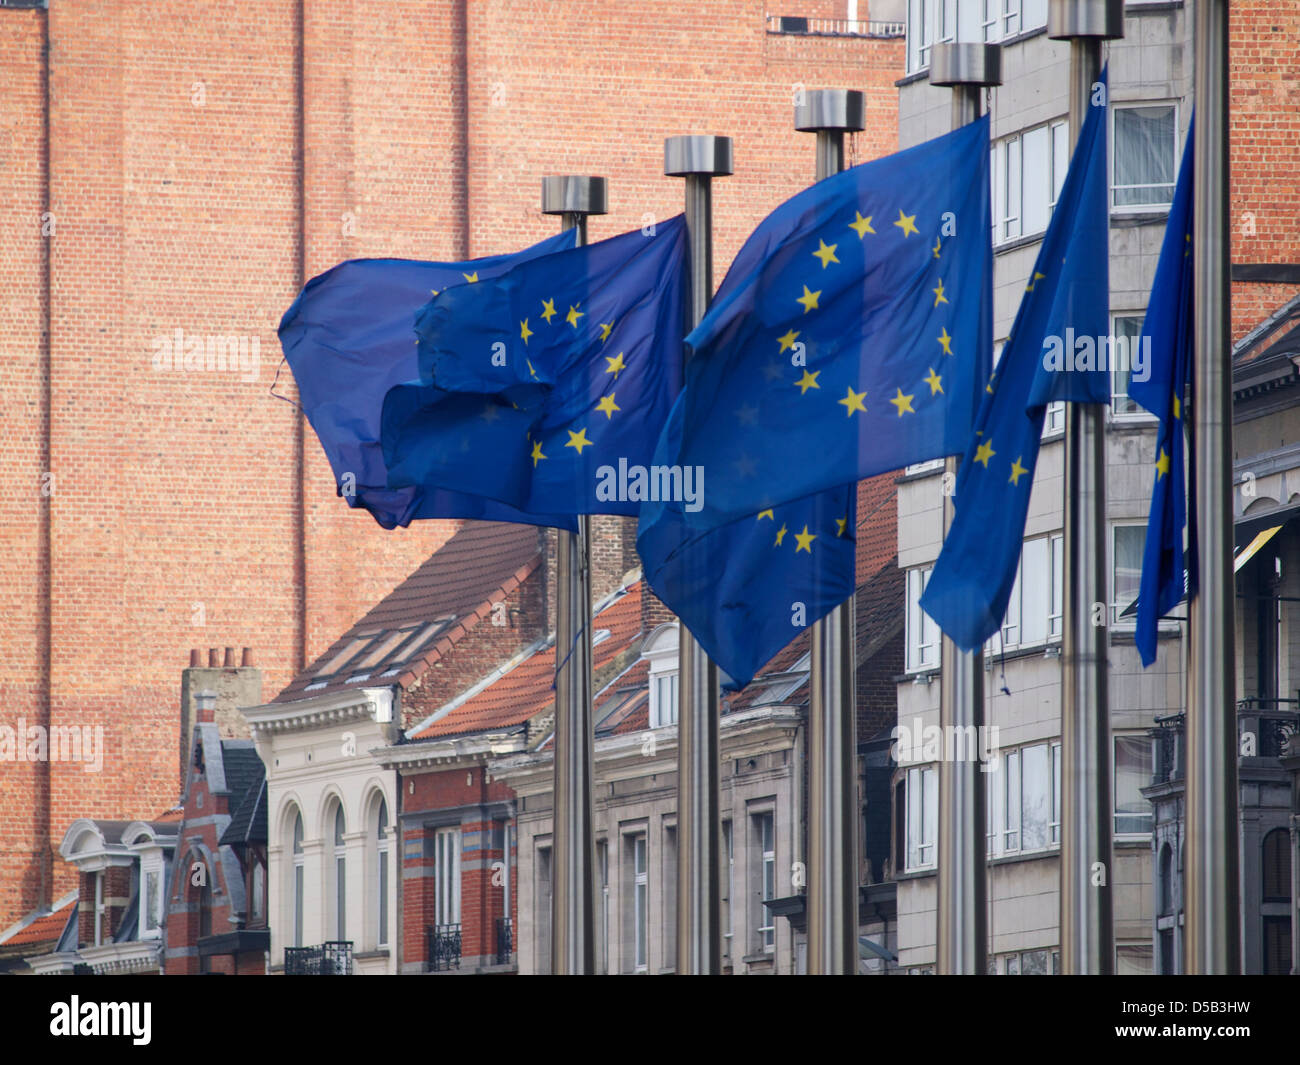 European Union flags in the wind with old buildings in the background. Brussels, Belgium - Stock Image